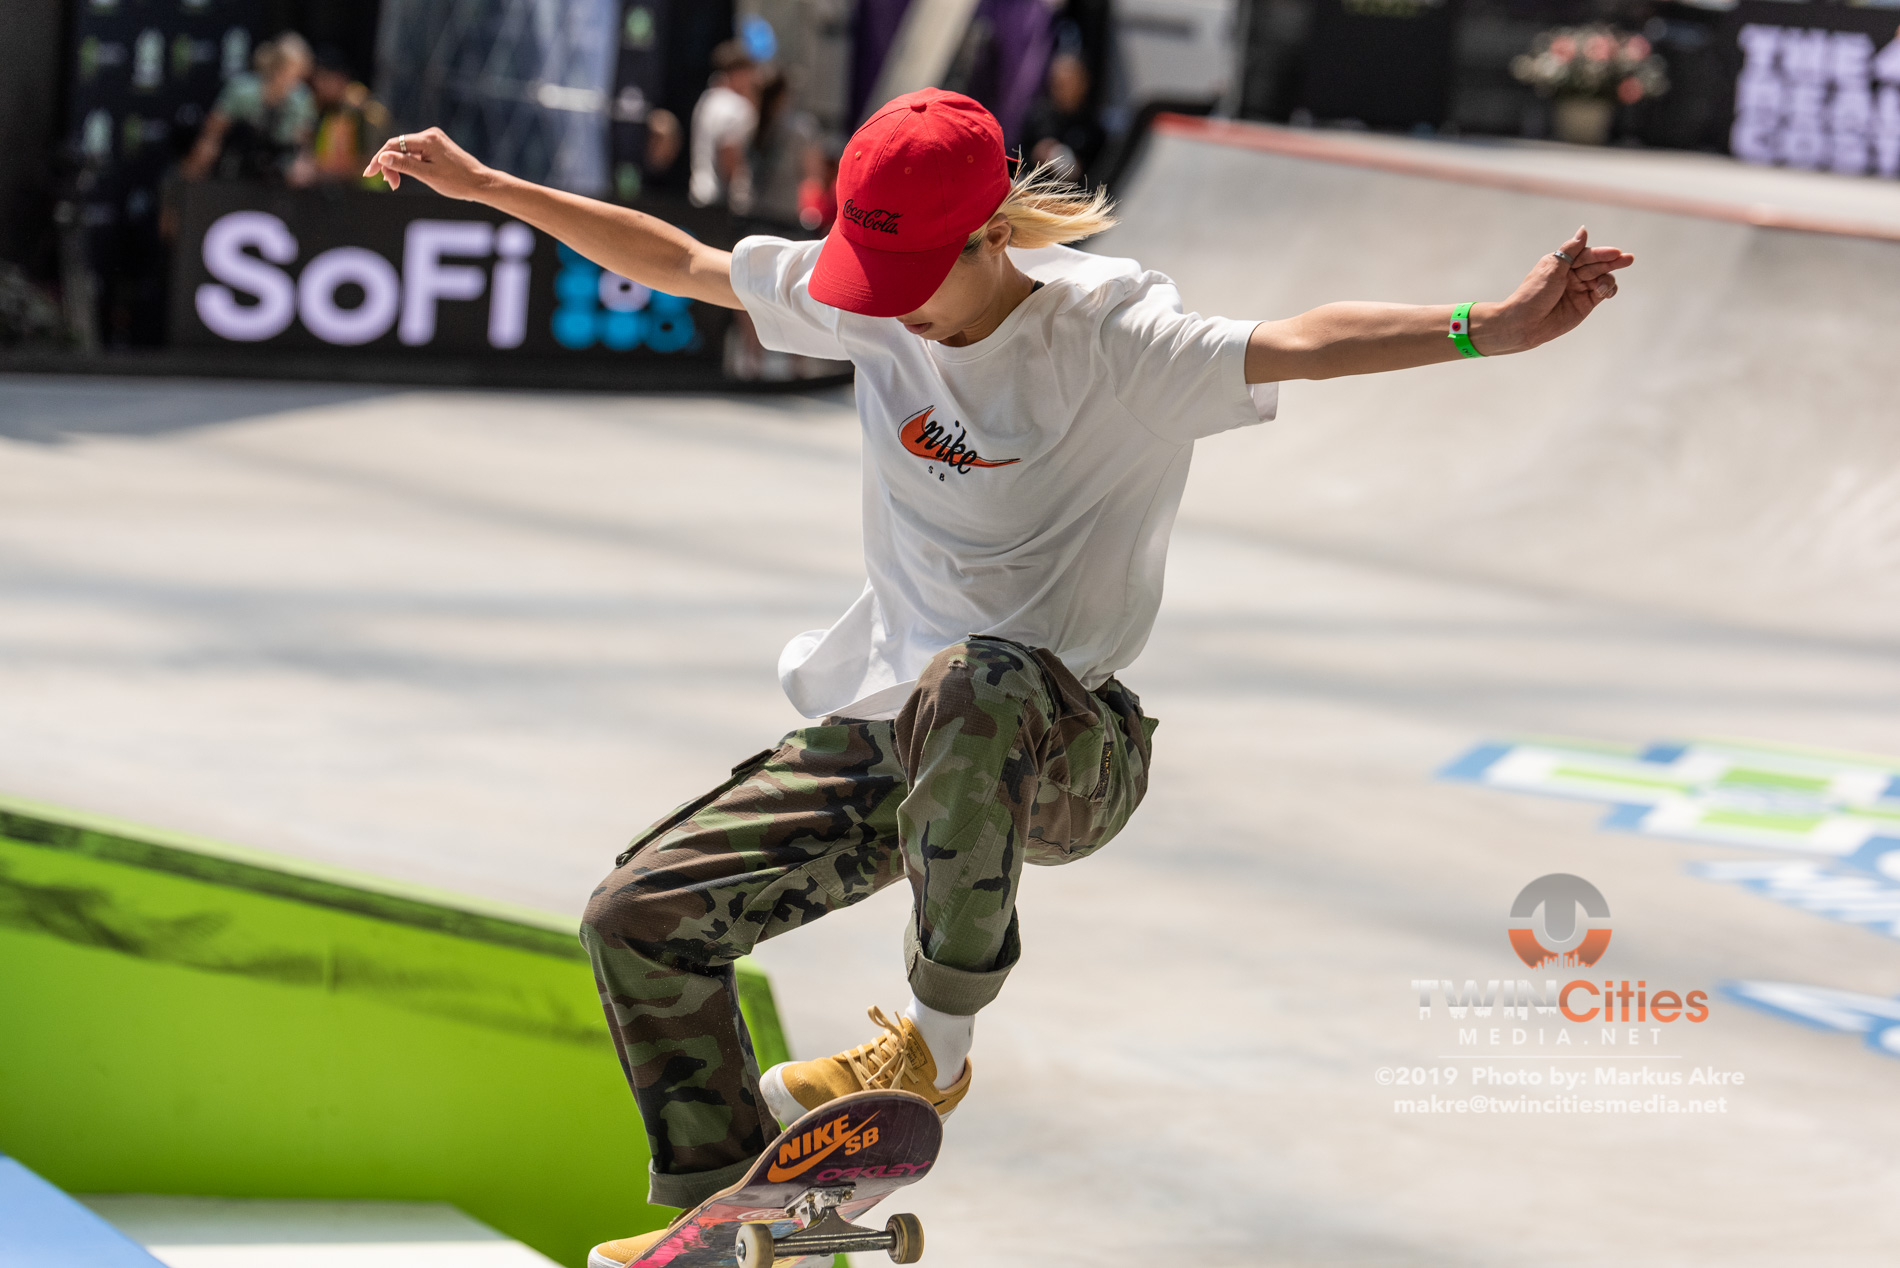 2019-X-Games-Day-4-Women-Skateboard-Street-3